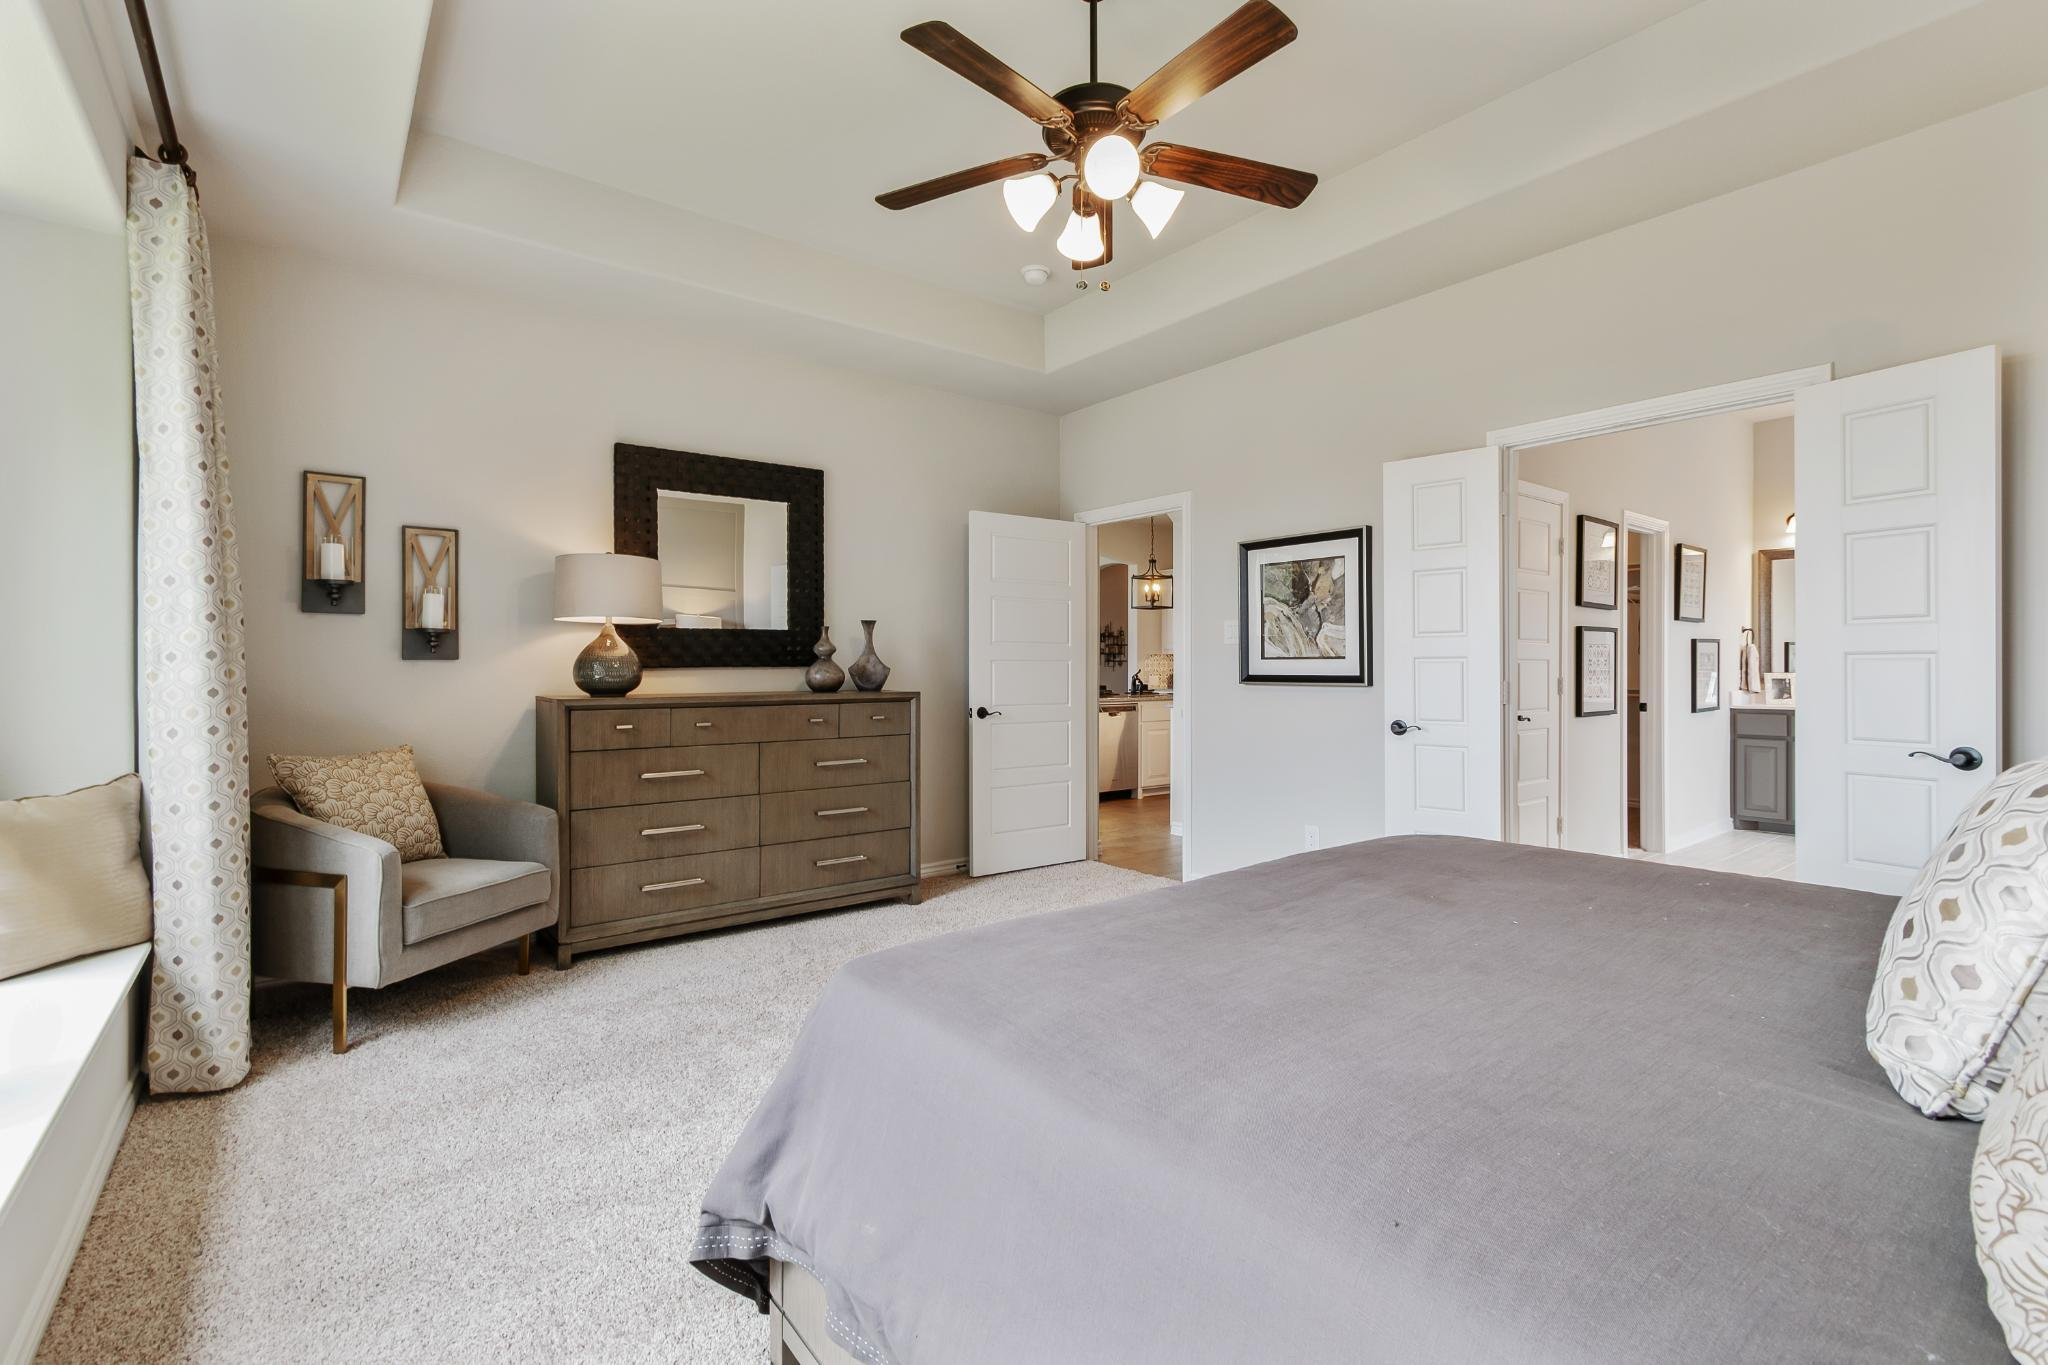 Bedroom featured in the 2434 By Antares Homes in Fort Worth, TX